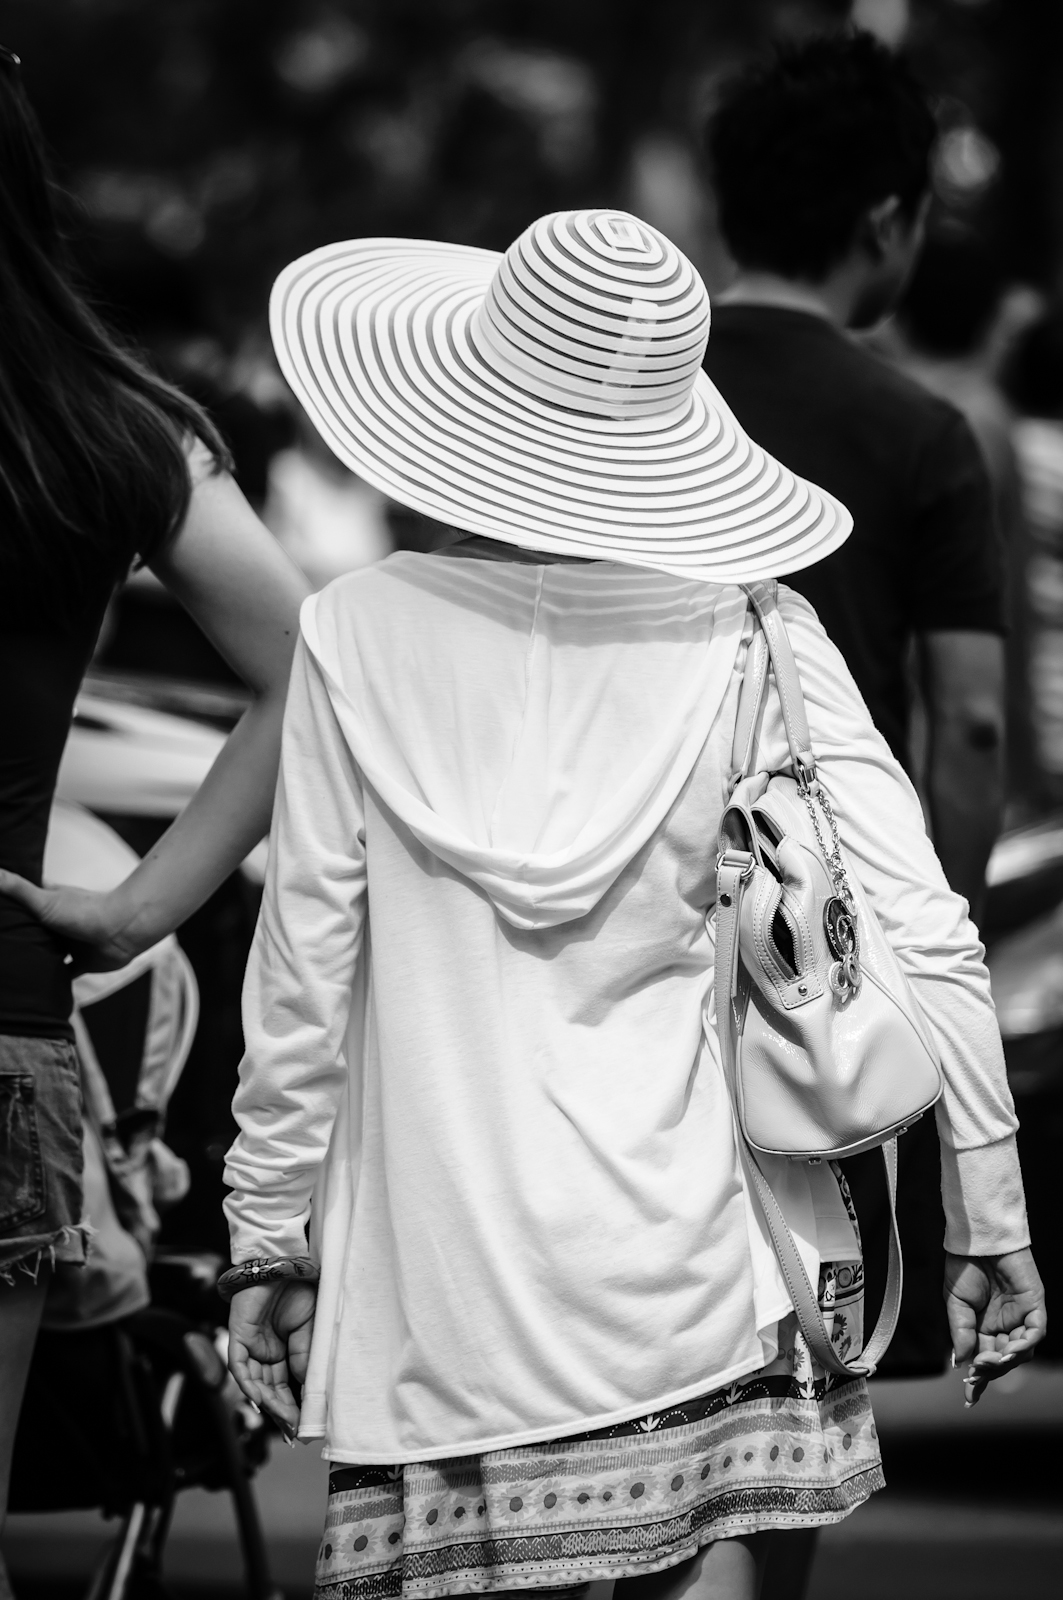 Street photography - Lady wearing a wide-brimmed hat